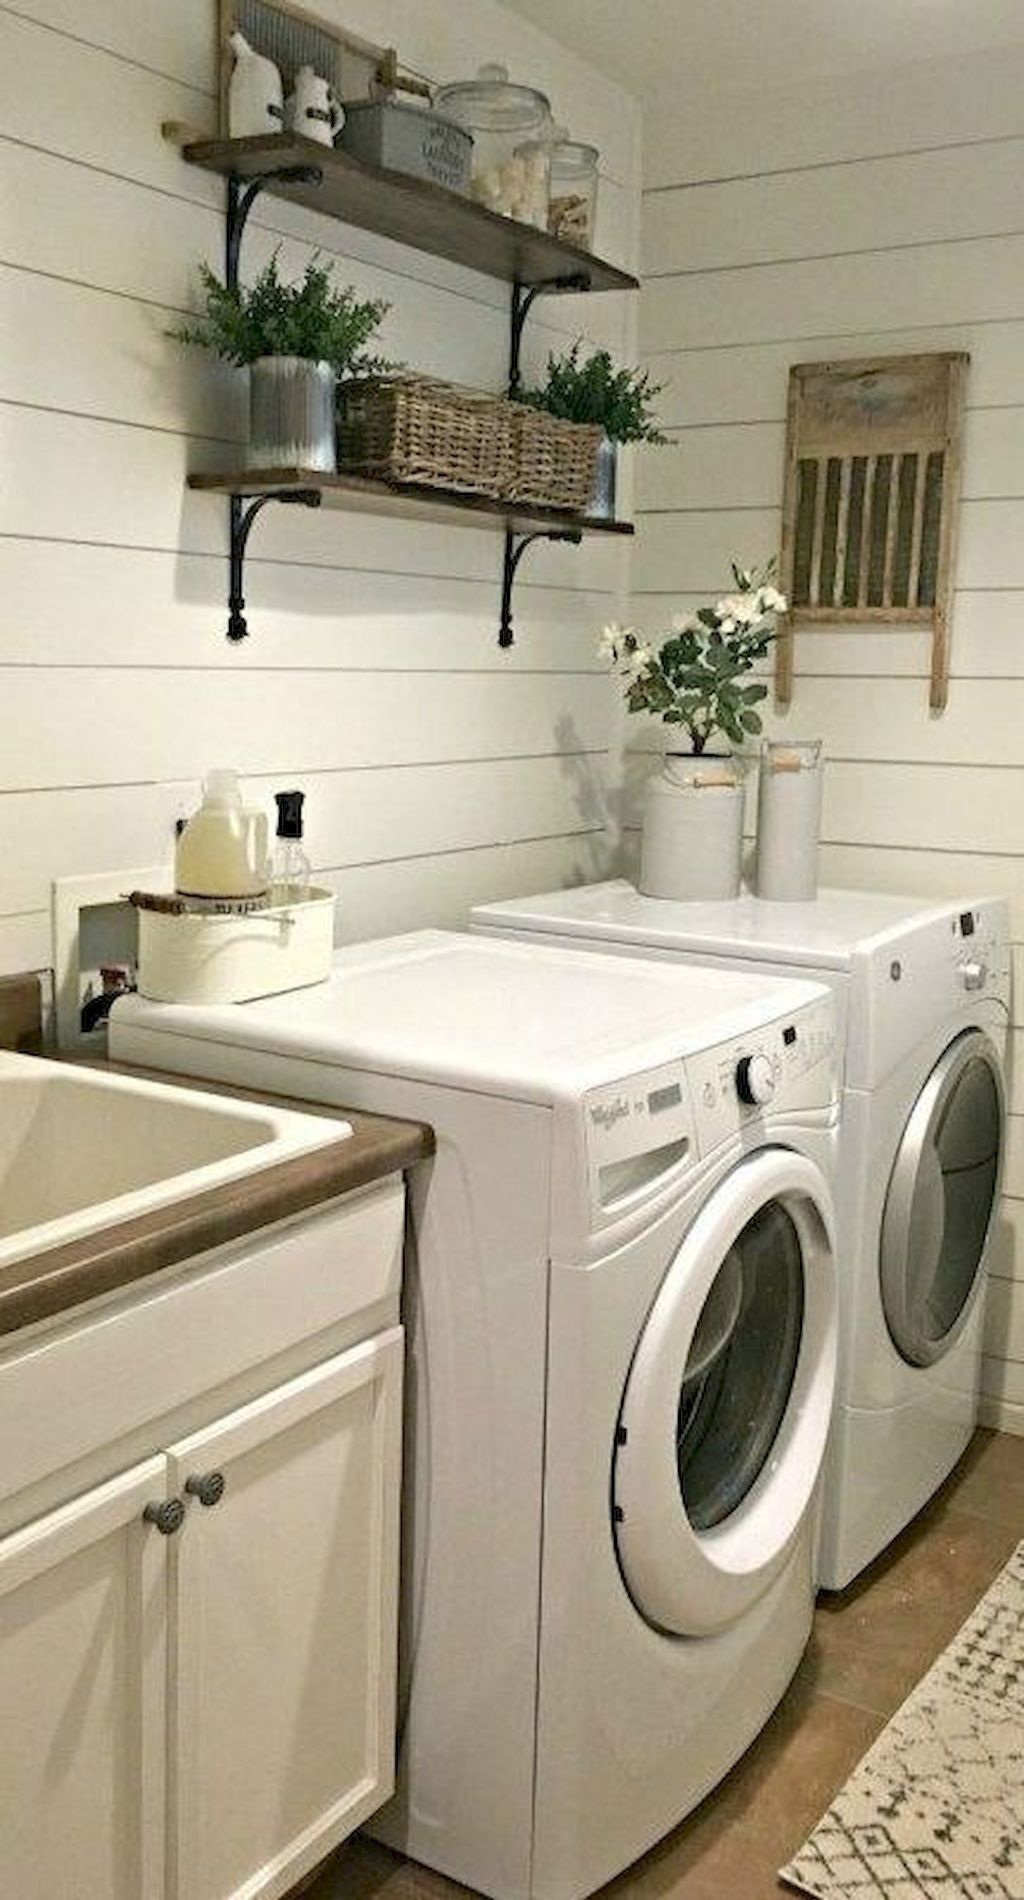 Lovely Laundry Room Wallpaper Ideas | Rustic laundry rooms ...